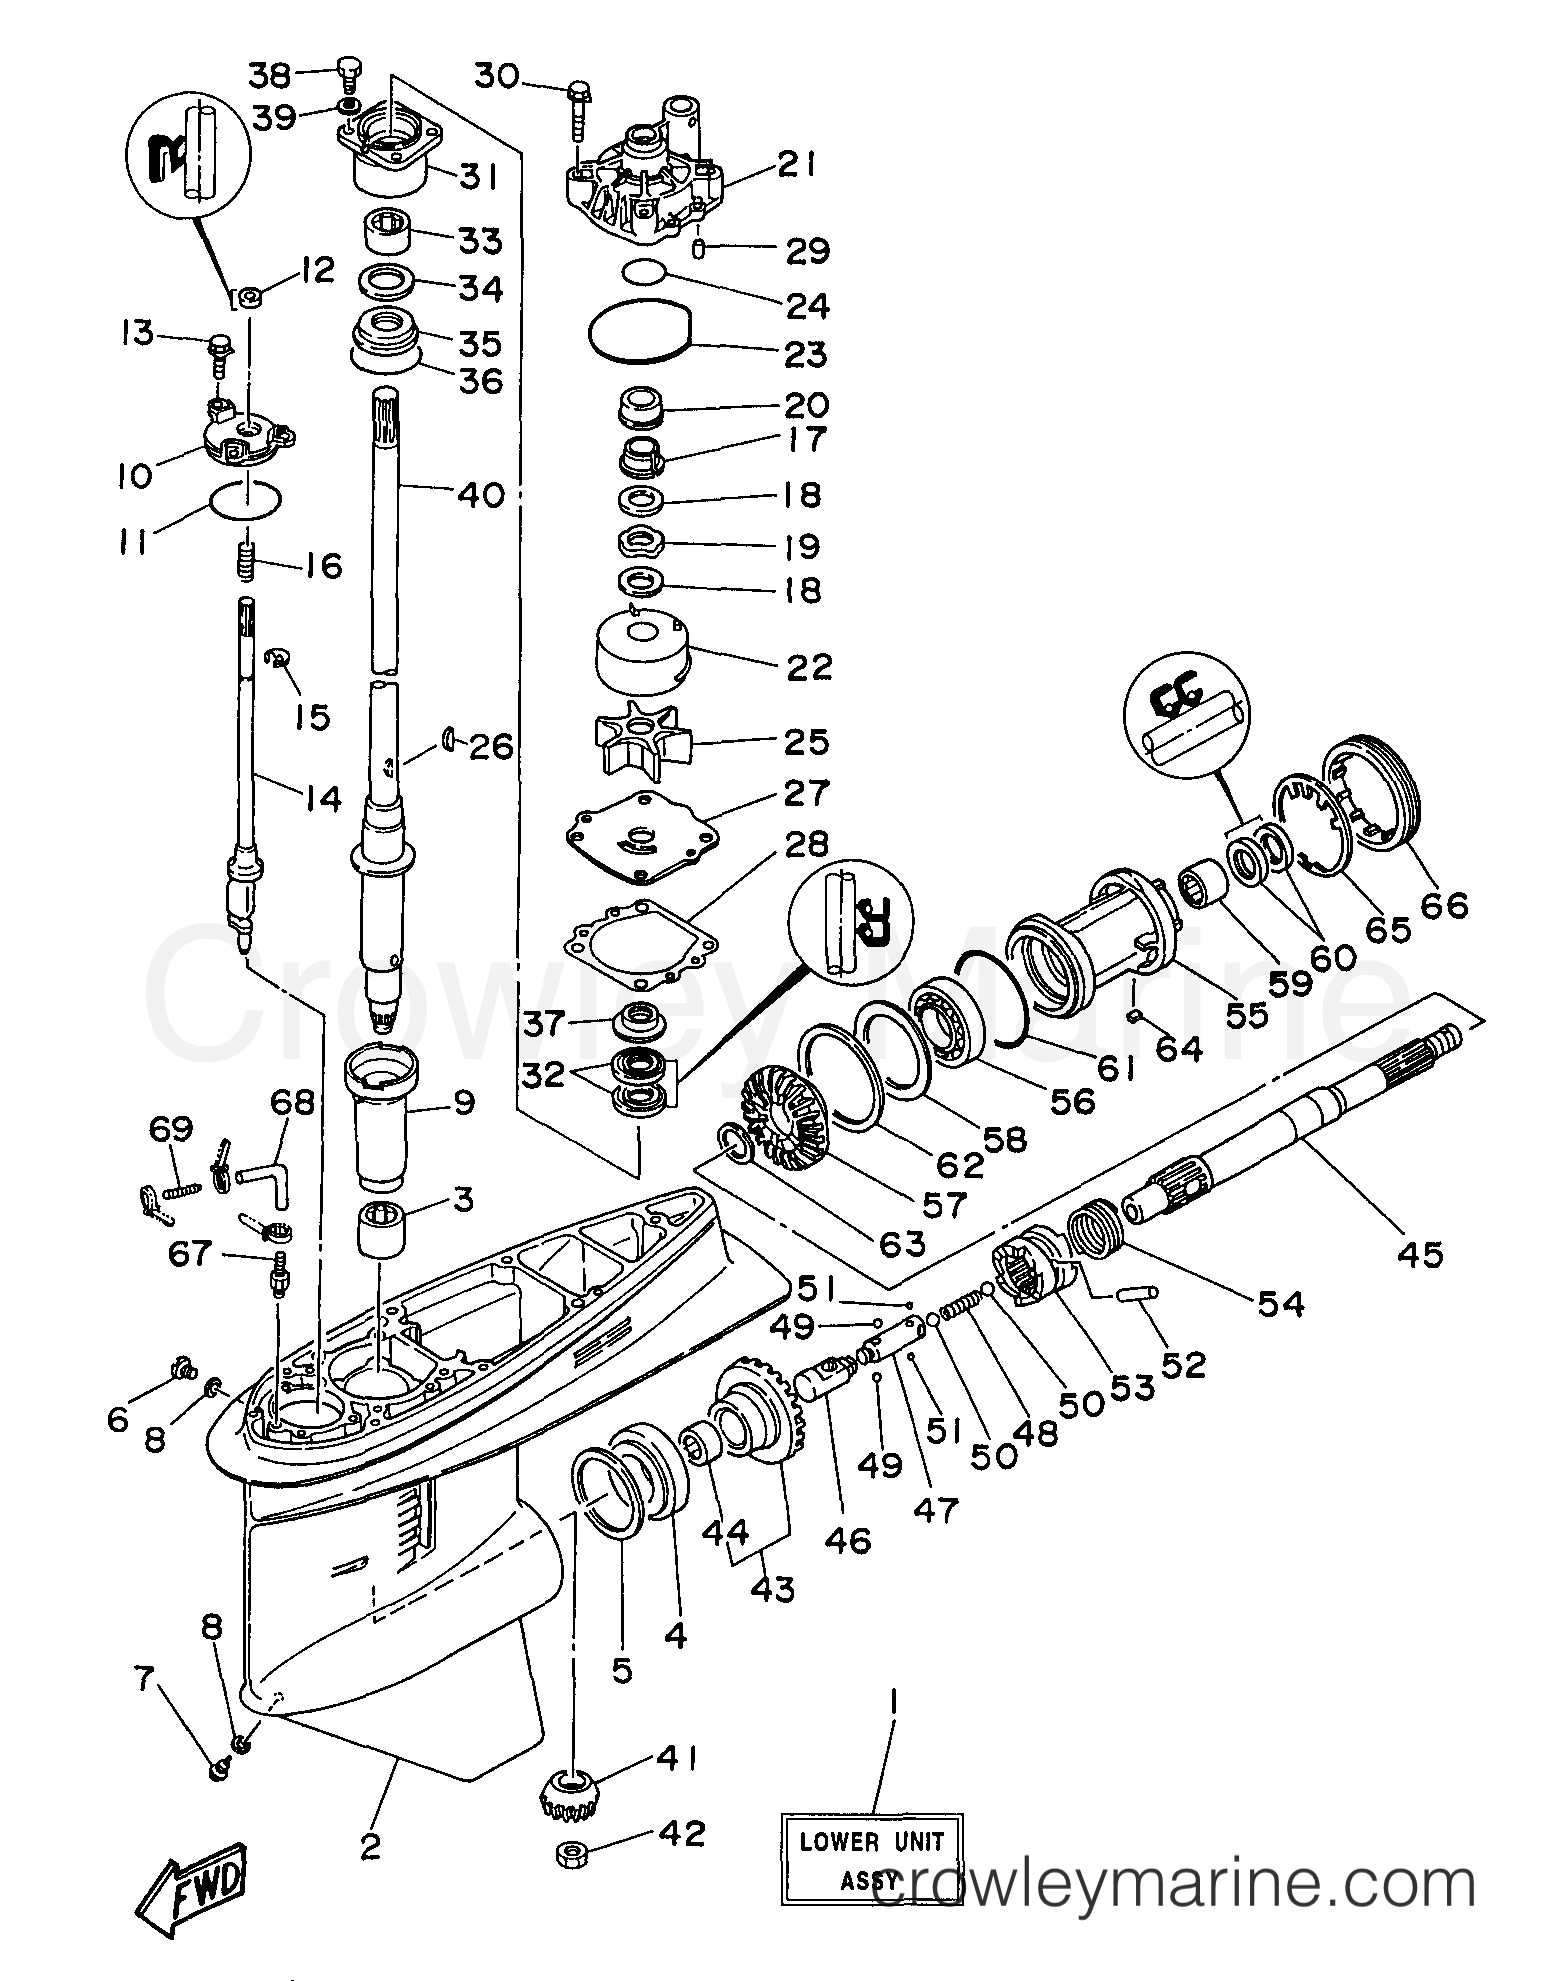 1987 Club Car Wiring Diagram Http Wwwvintagegolfcartpartscom Cgi